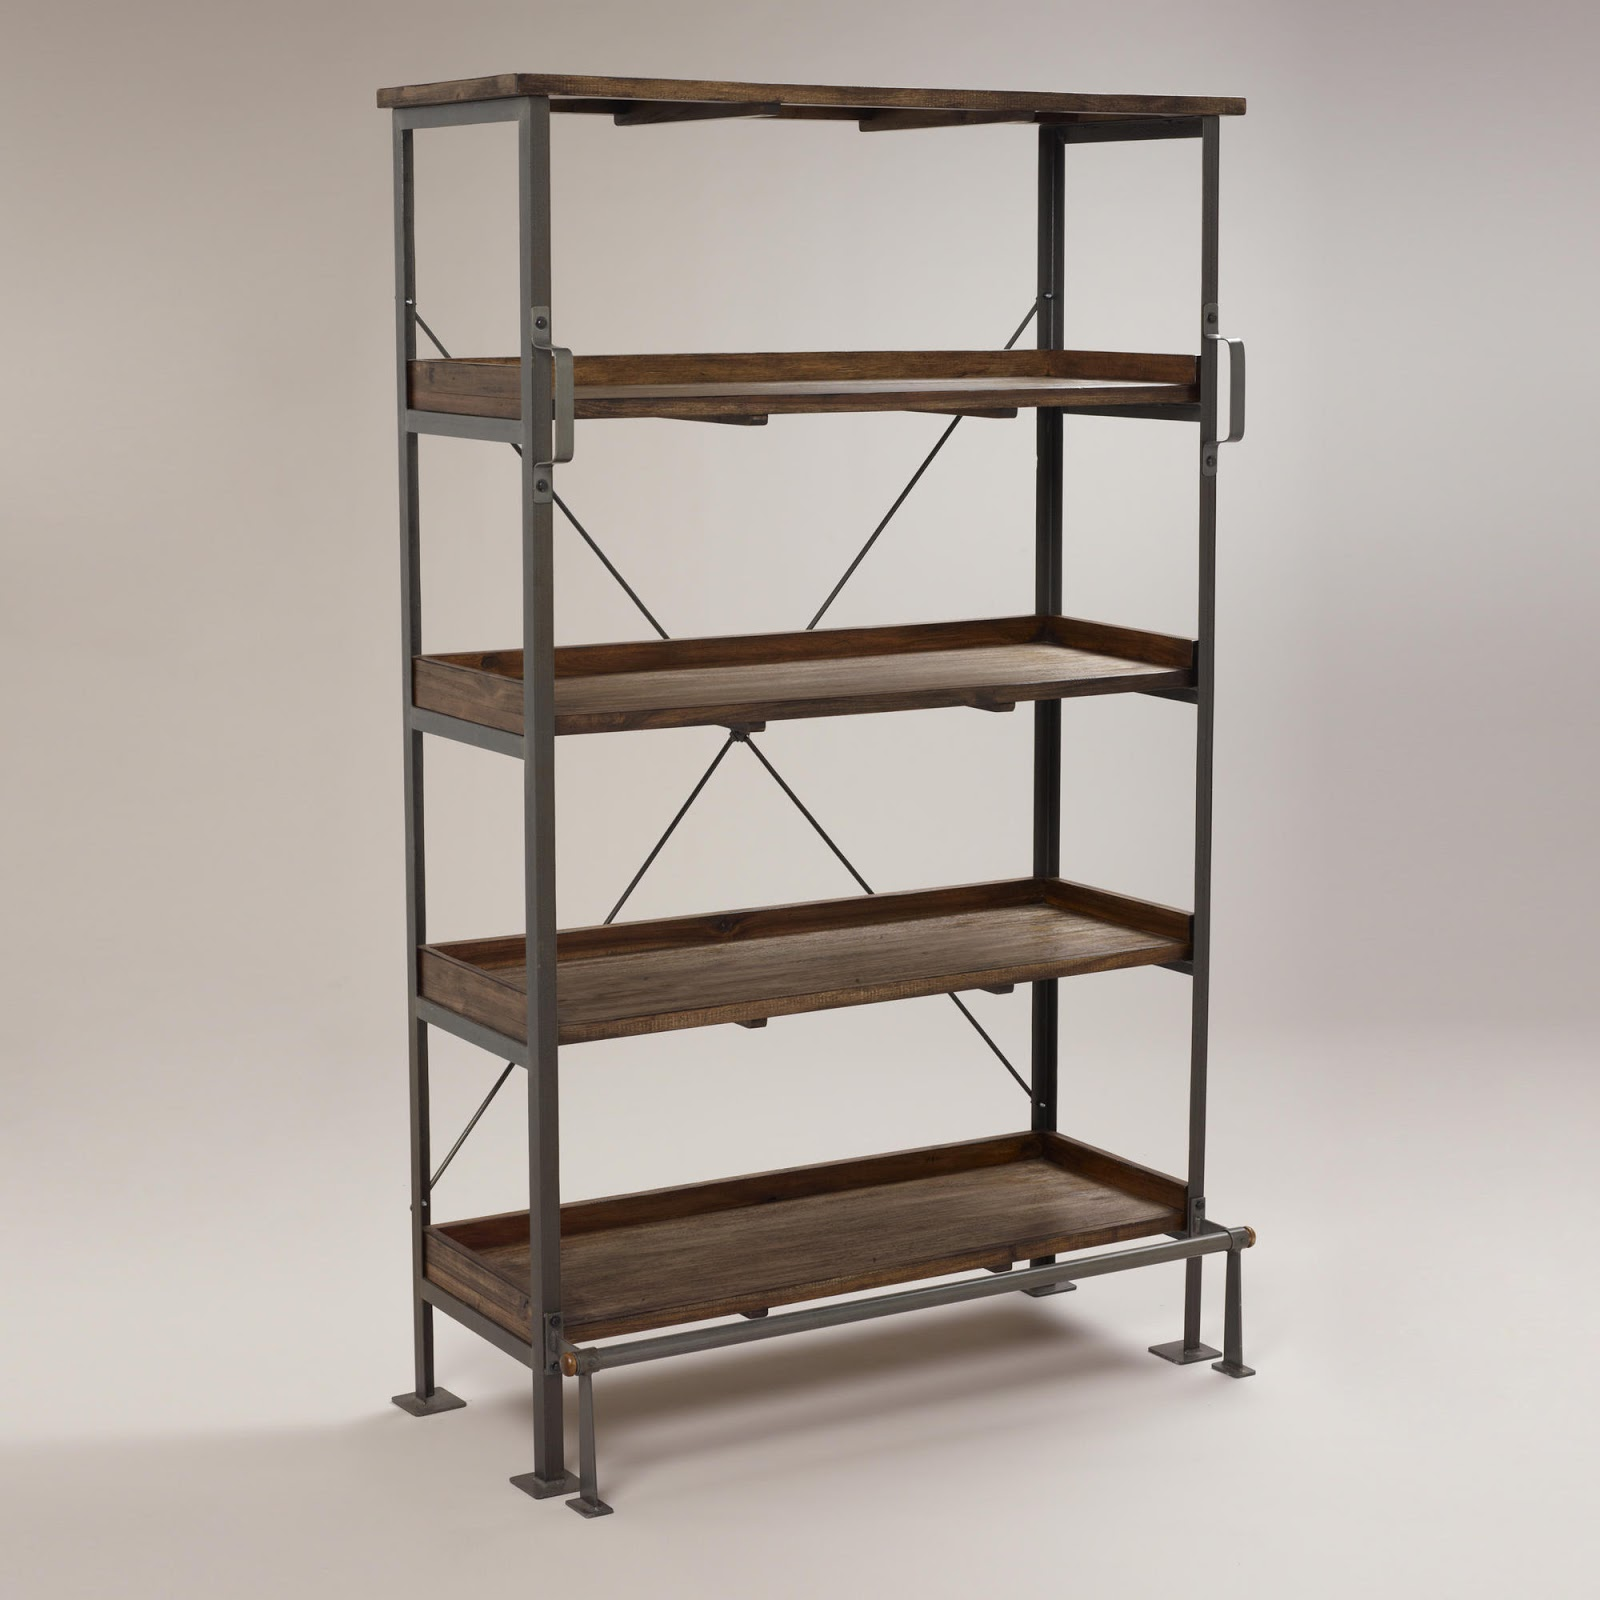 Restoration Hardware French Library Shelving Decor Look